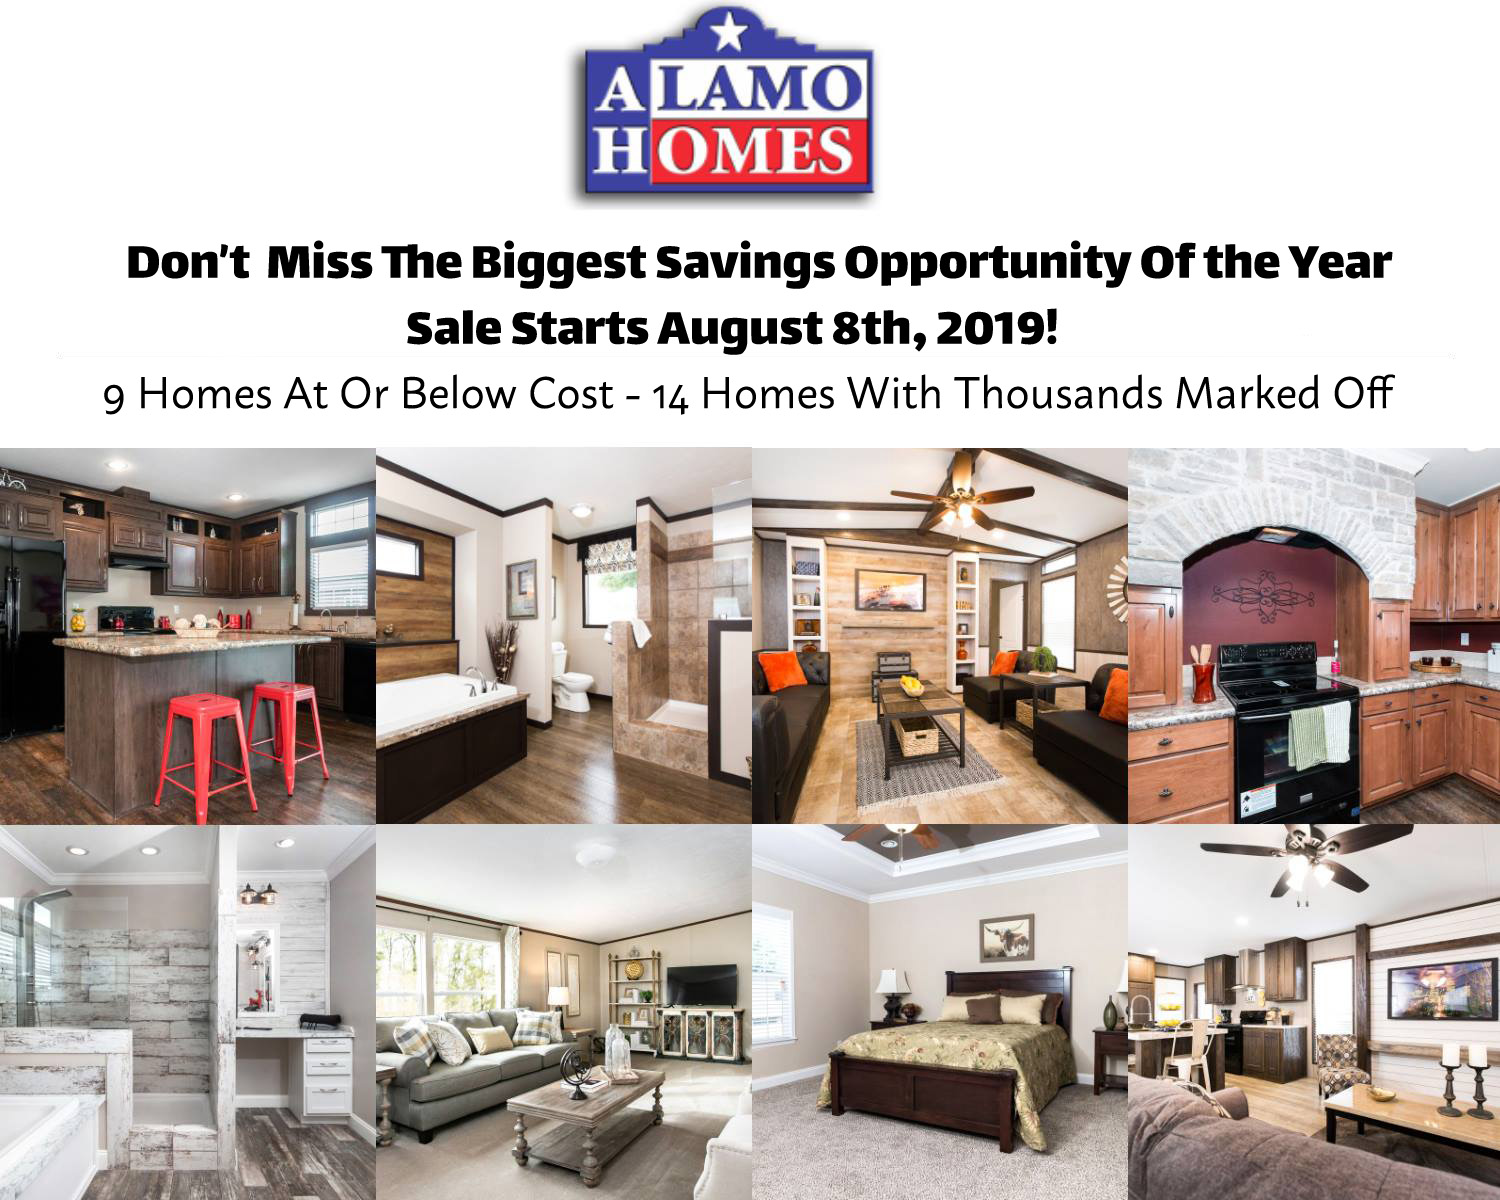 Alamo Homes - The Best Texas Mobile, Manufactured & Modular